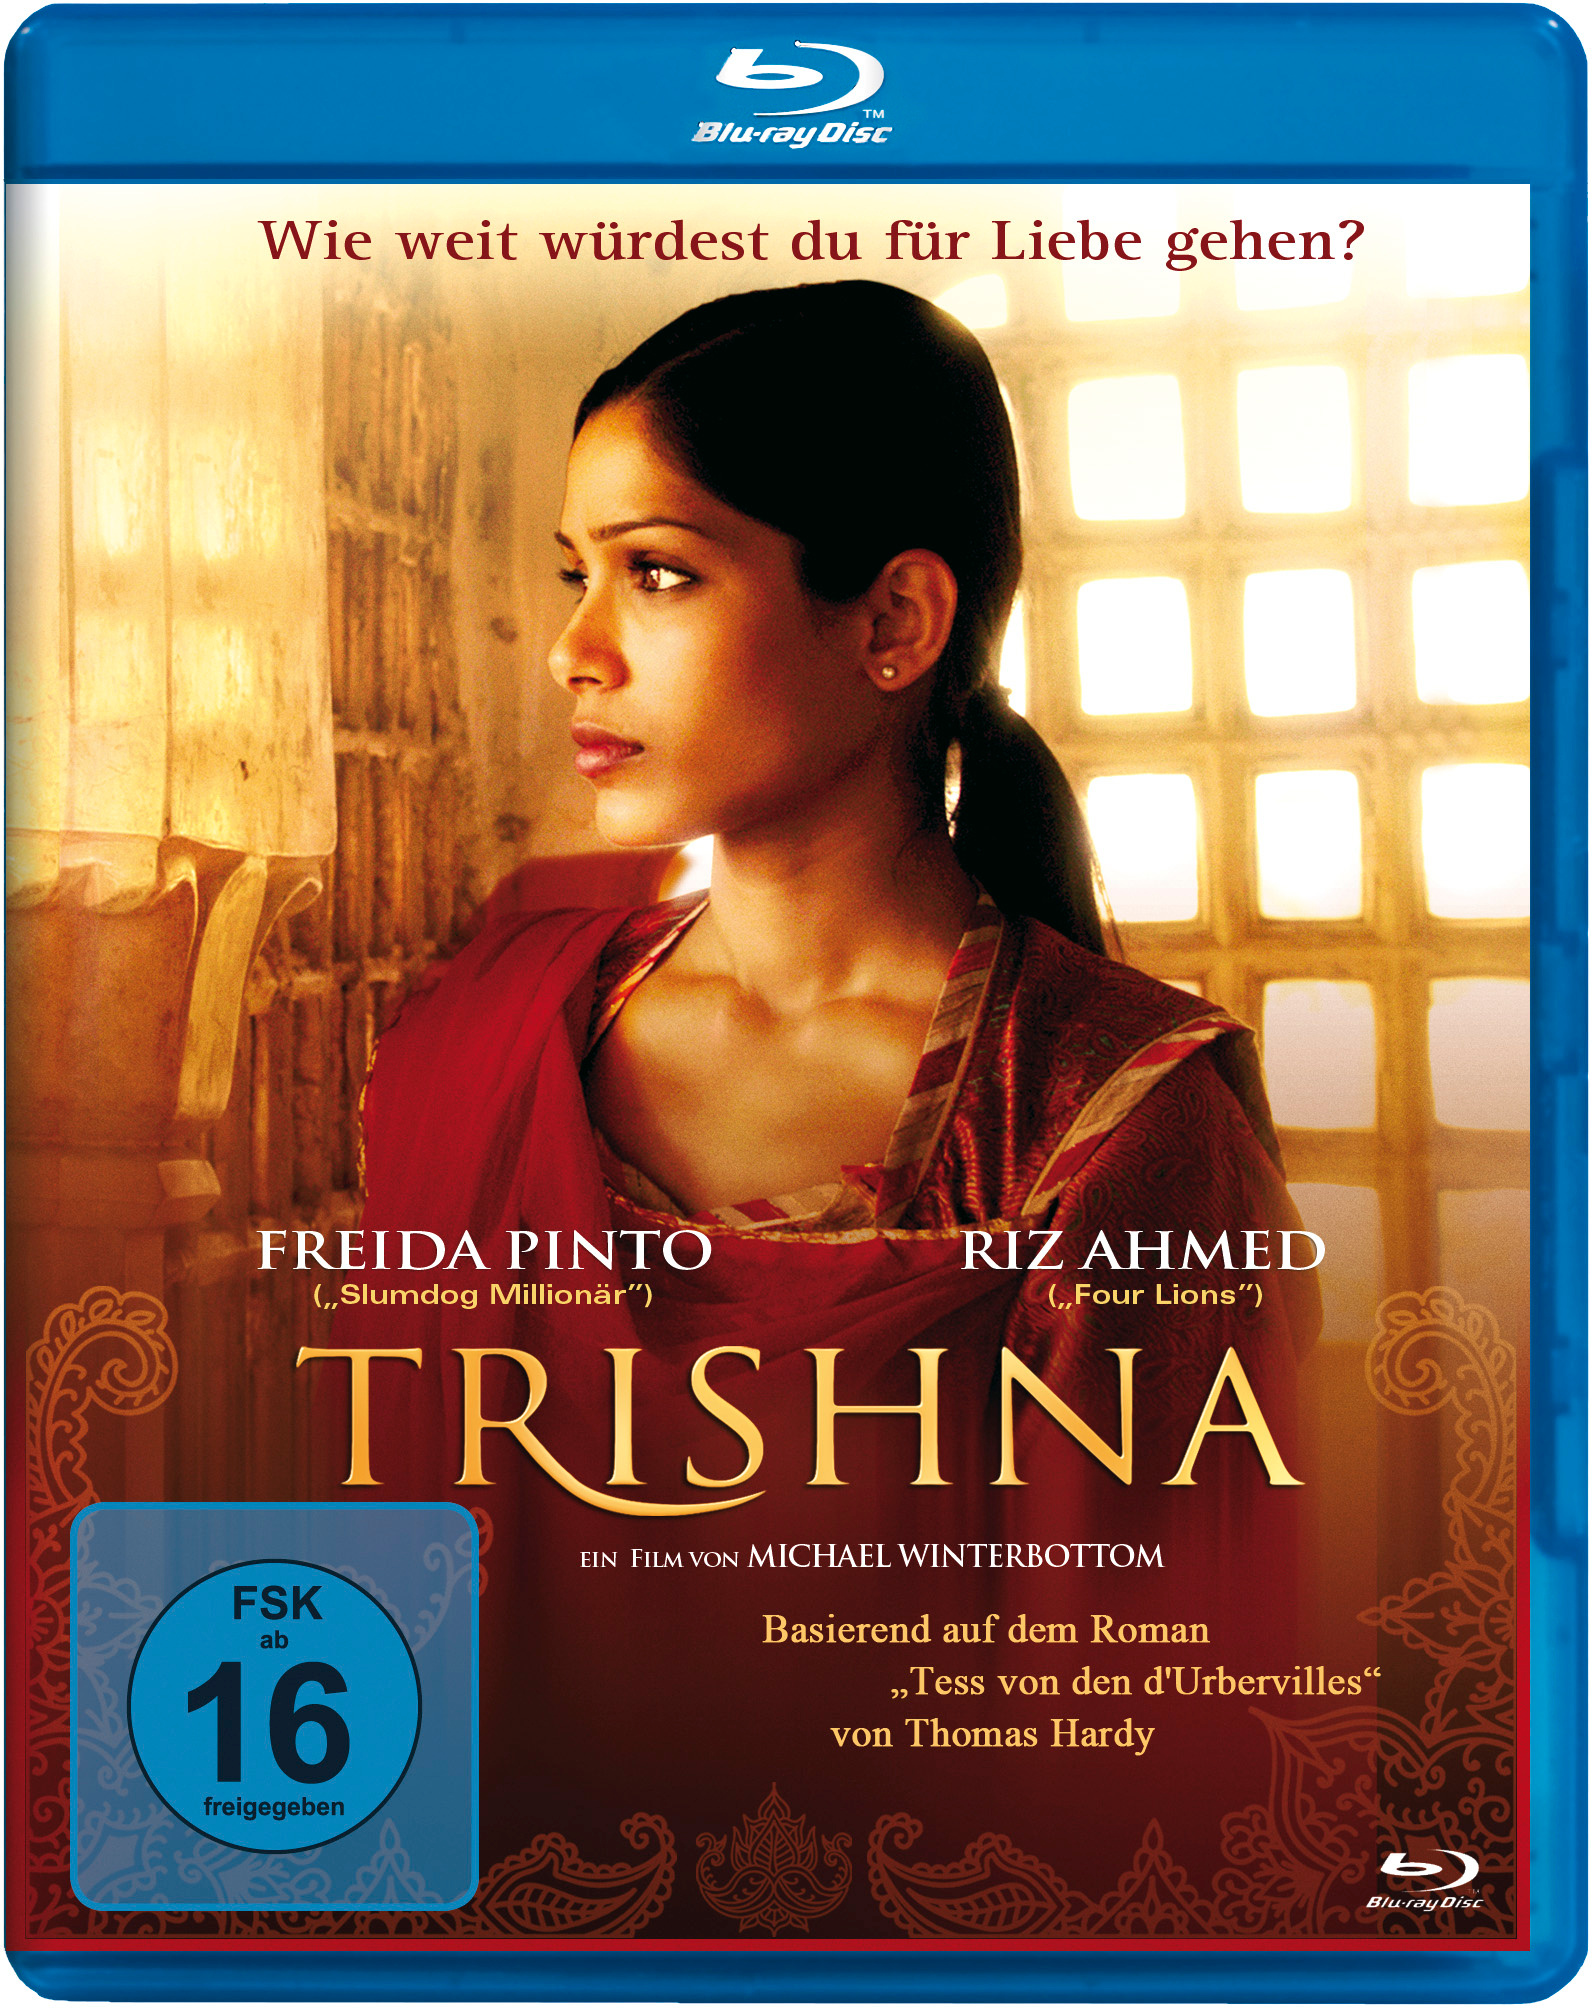 Trishna (2011) UNRATED English 720p HEVC BluRay x265 AAC ESubs Full Hollywood Movie [550MB]